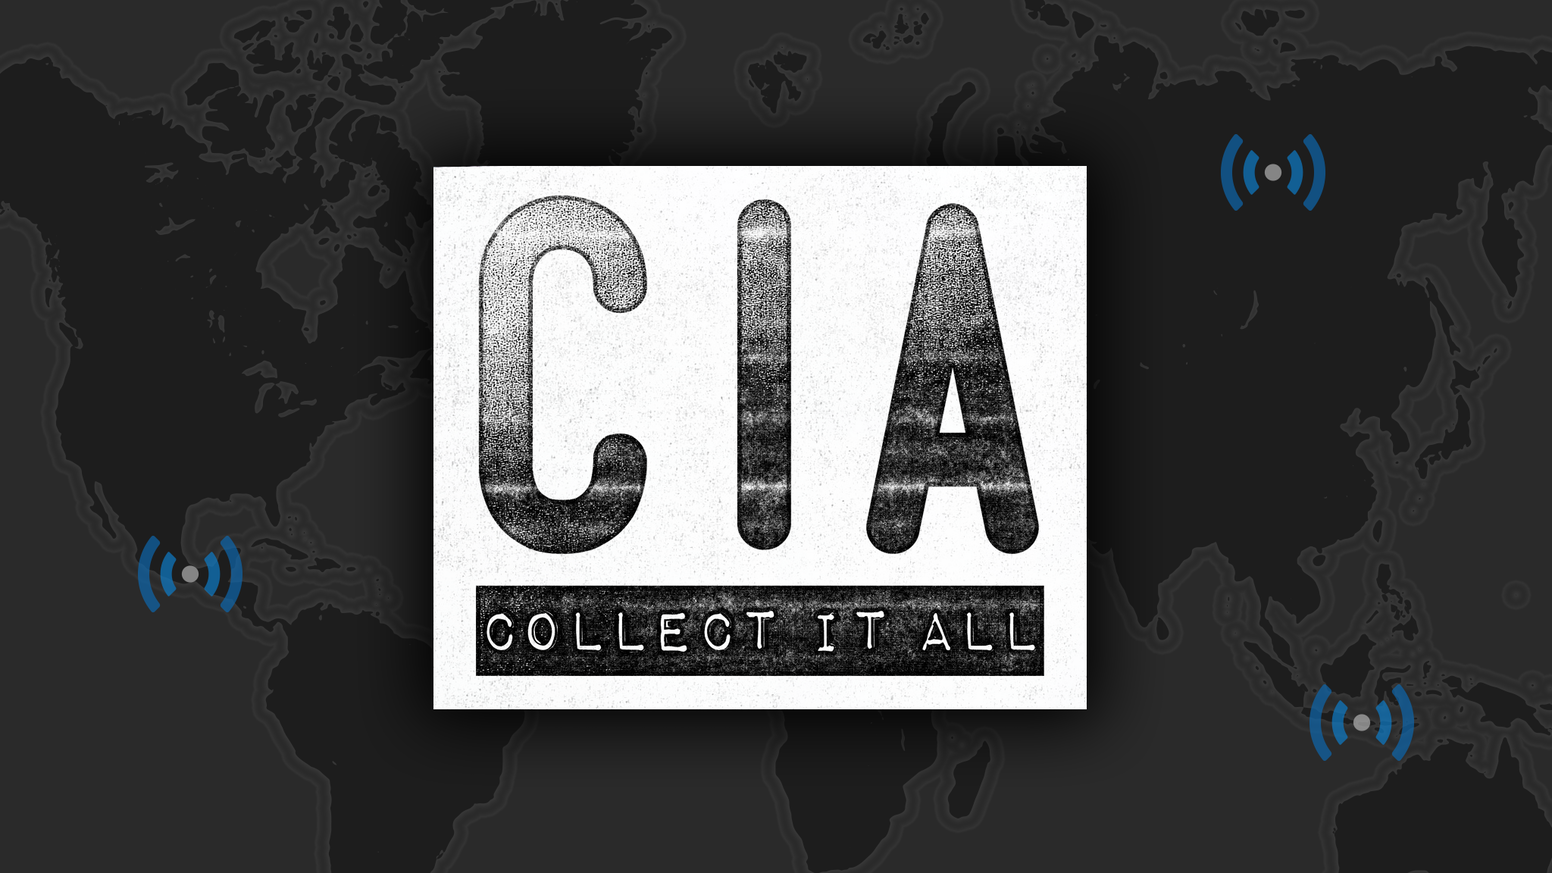 A Competitive Card Game Based On The CIAs Declassified Training Collection Deck